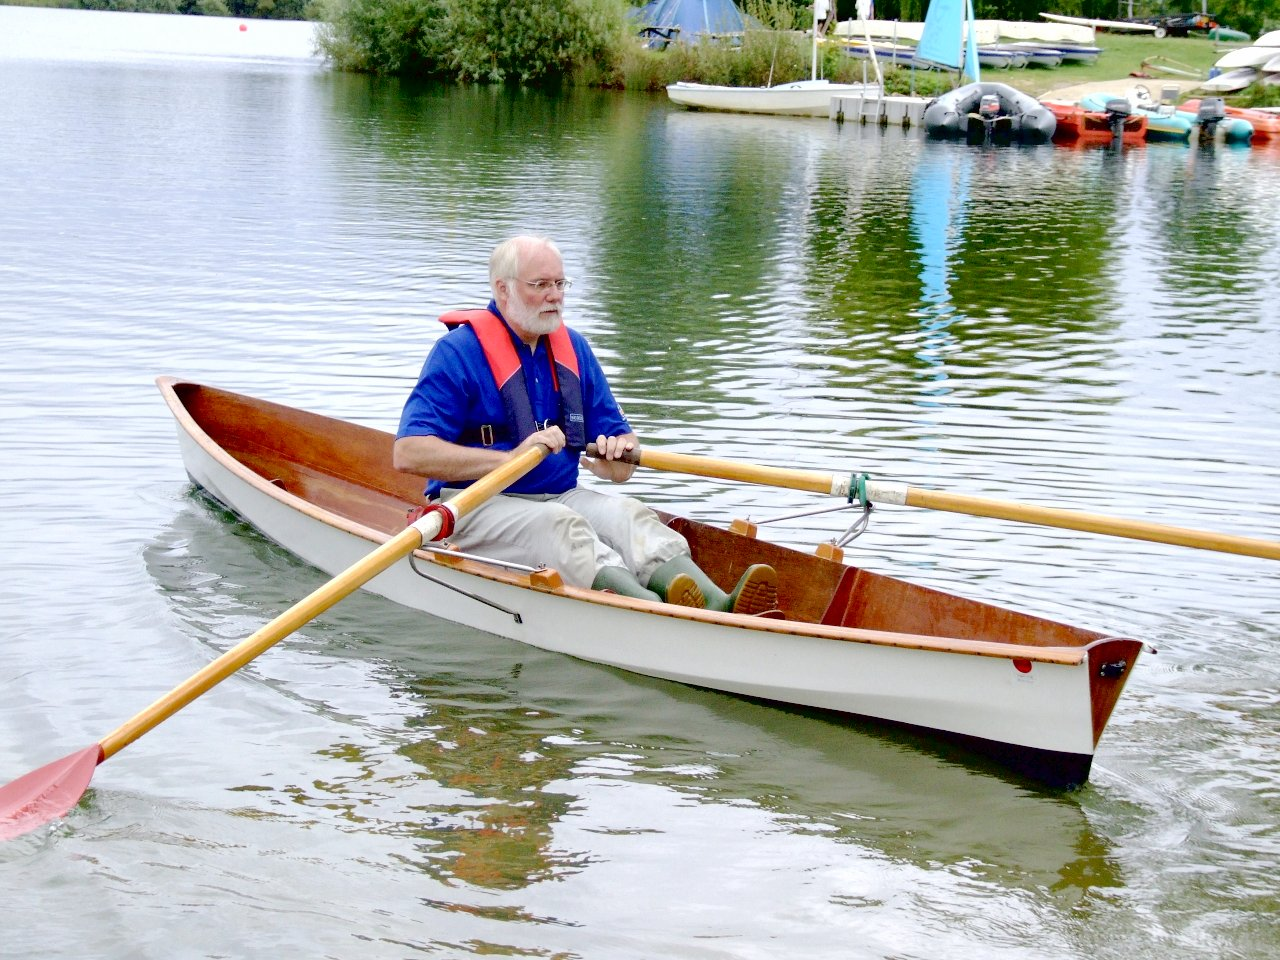 Home Built Boat Regatta meeting 2007 | intheboatshed.net